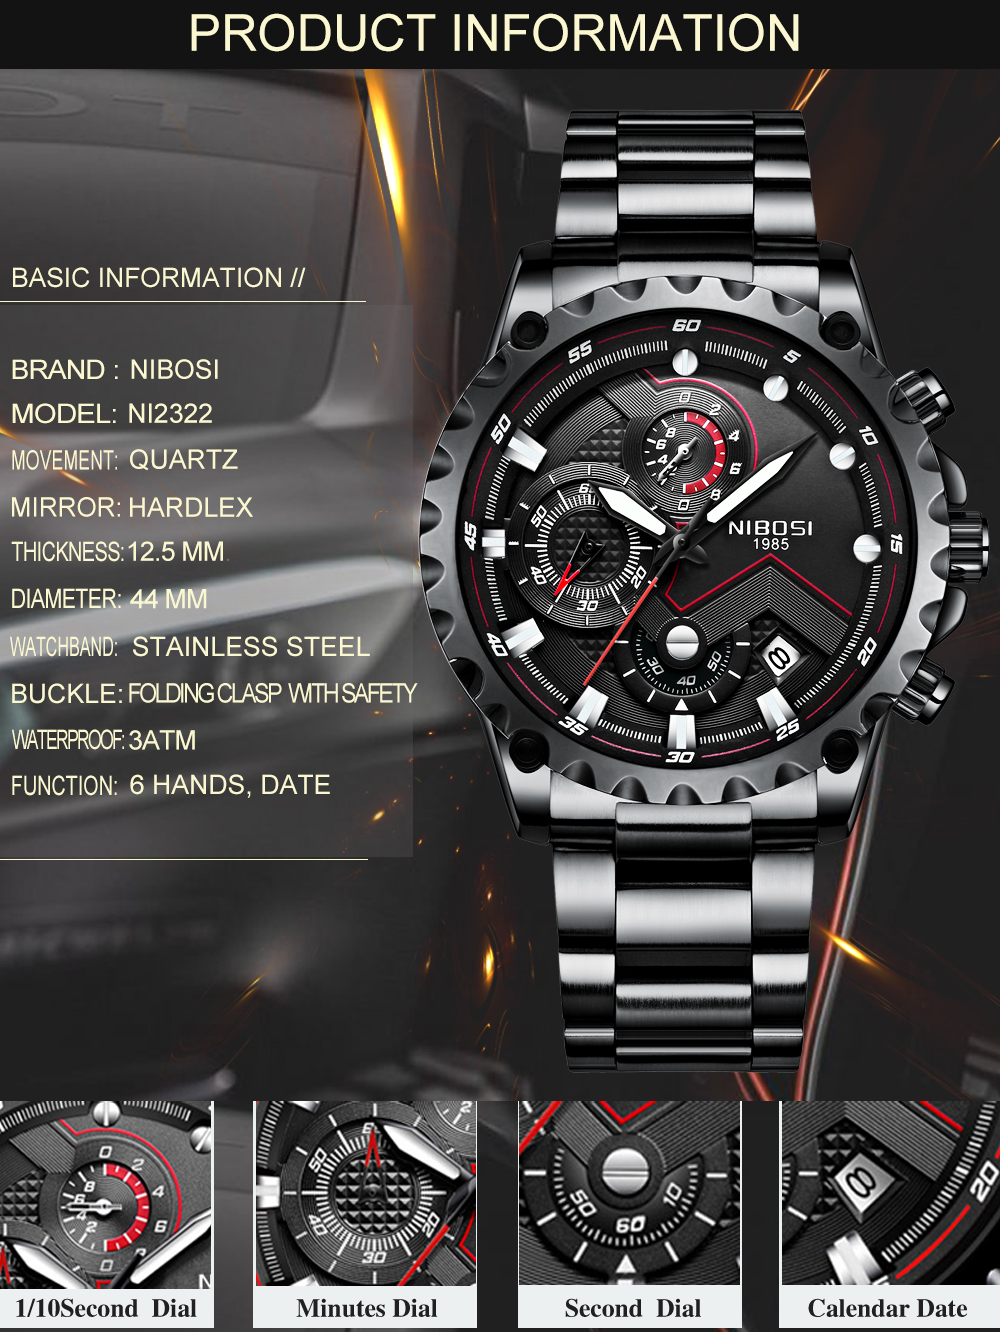 Military Watches Men Quartz Analog Men Watches Stainless Steel Time Date Clock Men Luxury Brand Hot Famous Brand Watches NIBOSI  (3)